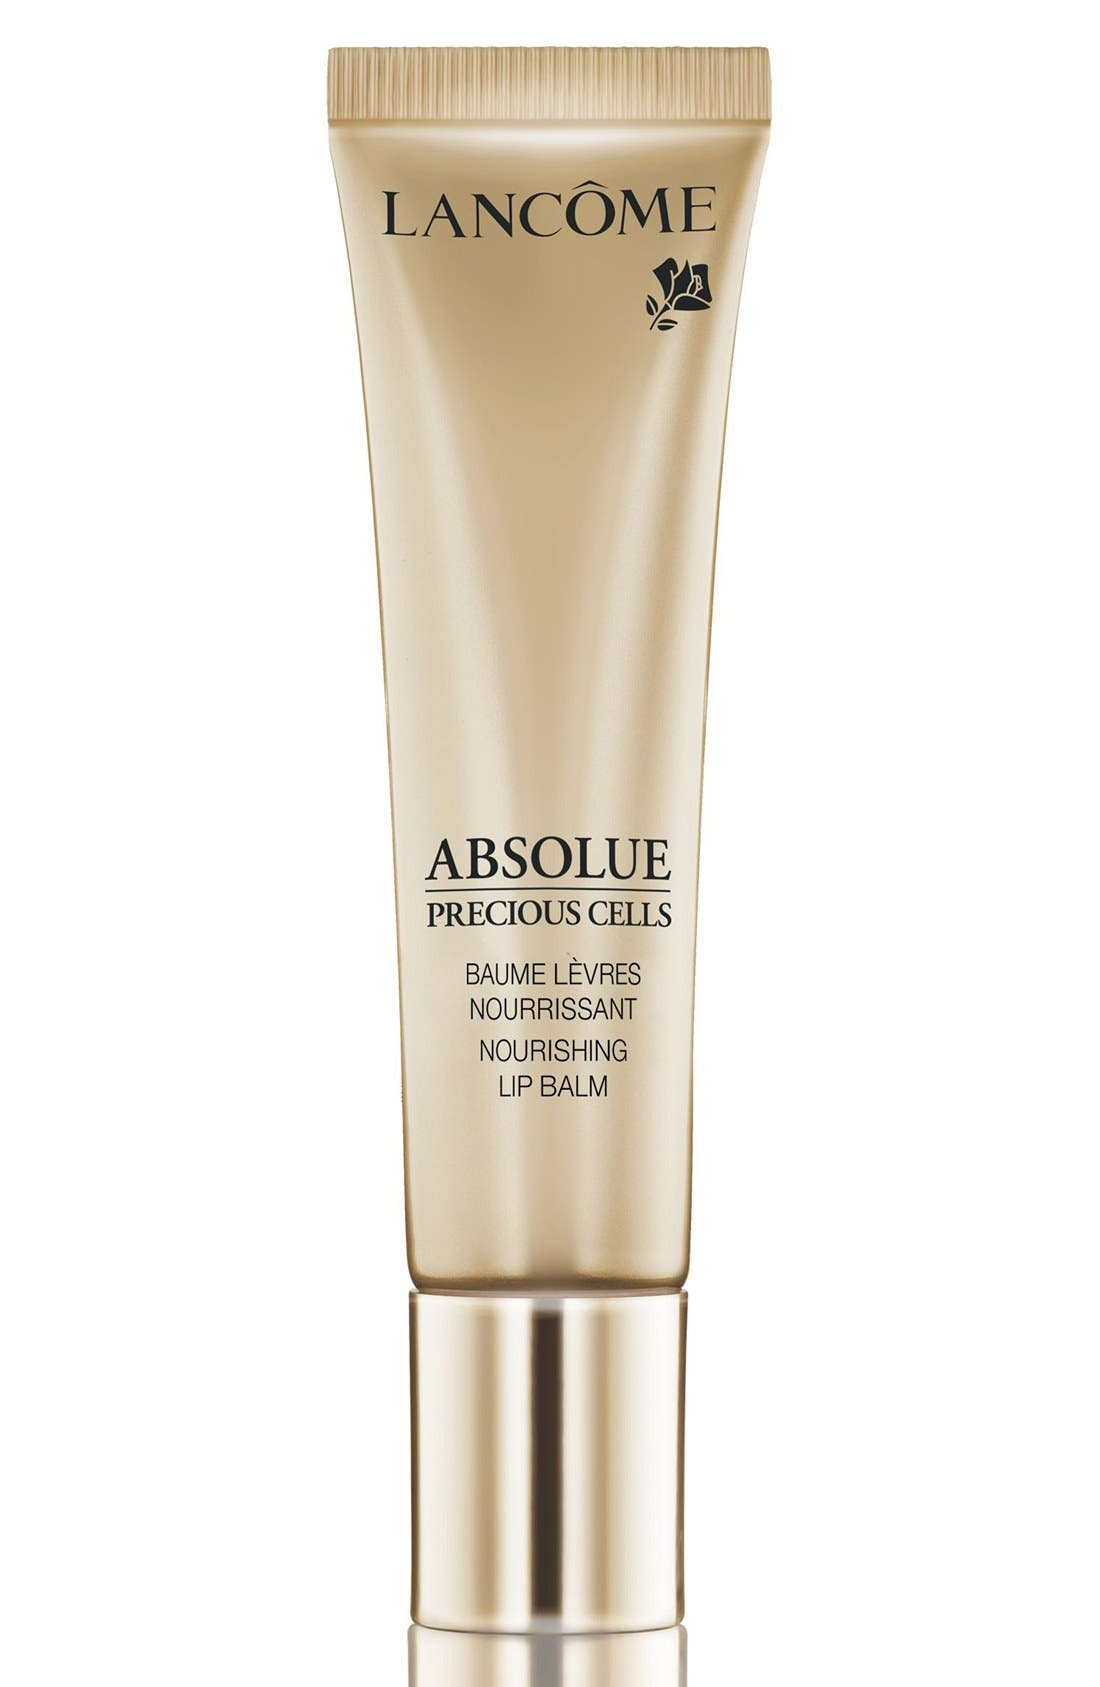 Lancôme Absolue Precious Cells Silky Lip Balm